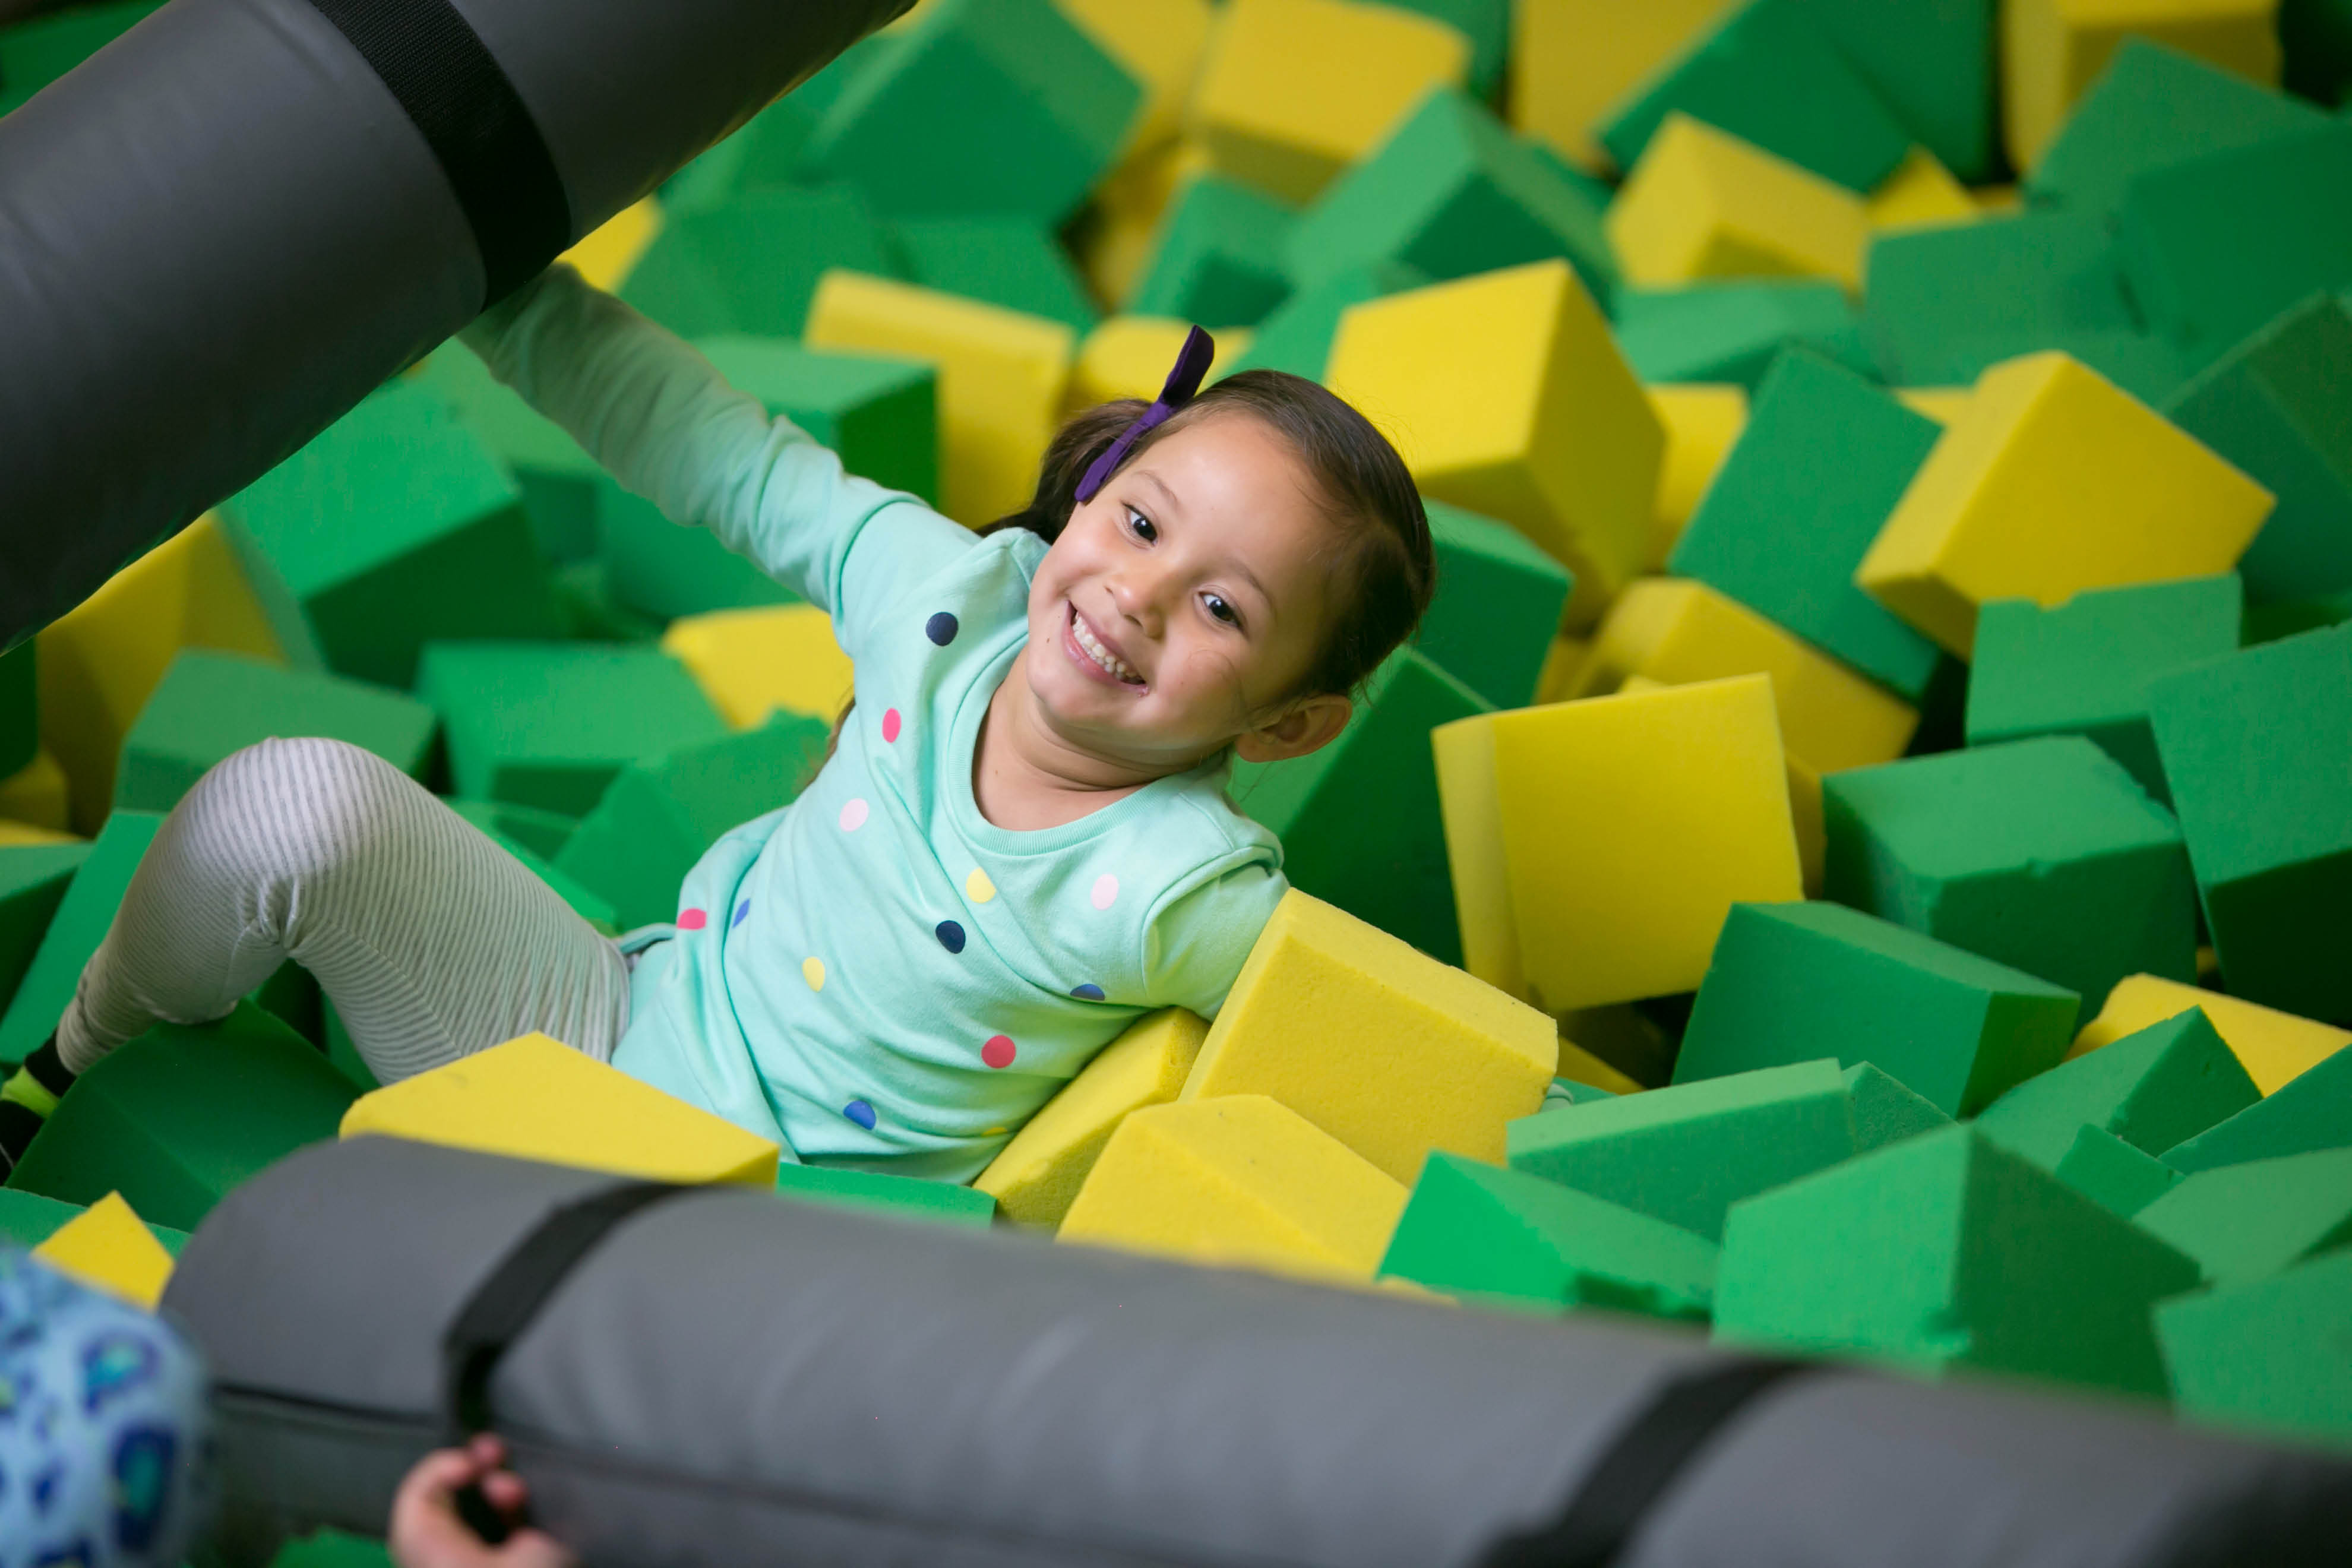 Bounce house for birthday parties in WAYNE, NJ NEXT TO WILLOWBROOK MALL